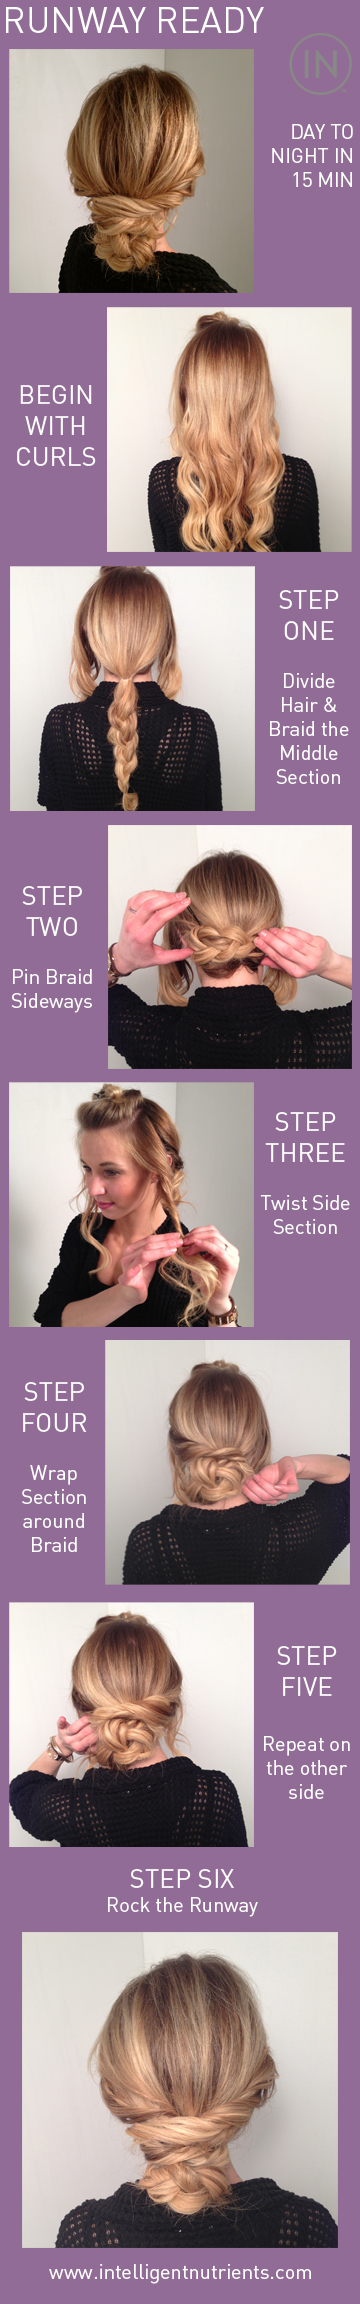 Super easy runway look for nd day hair ready in min hair